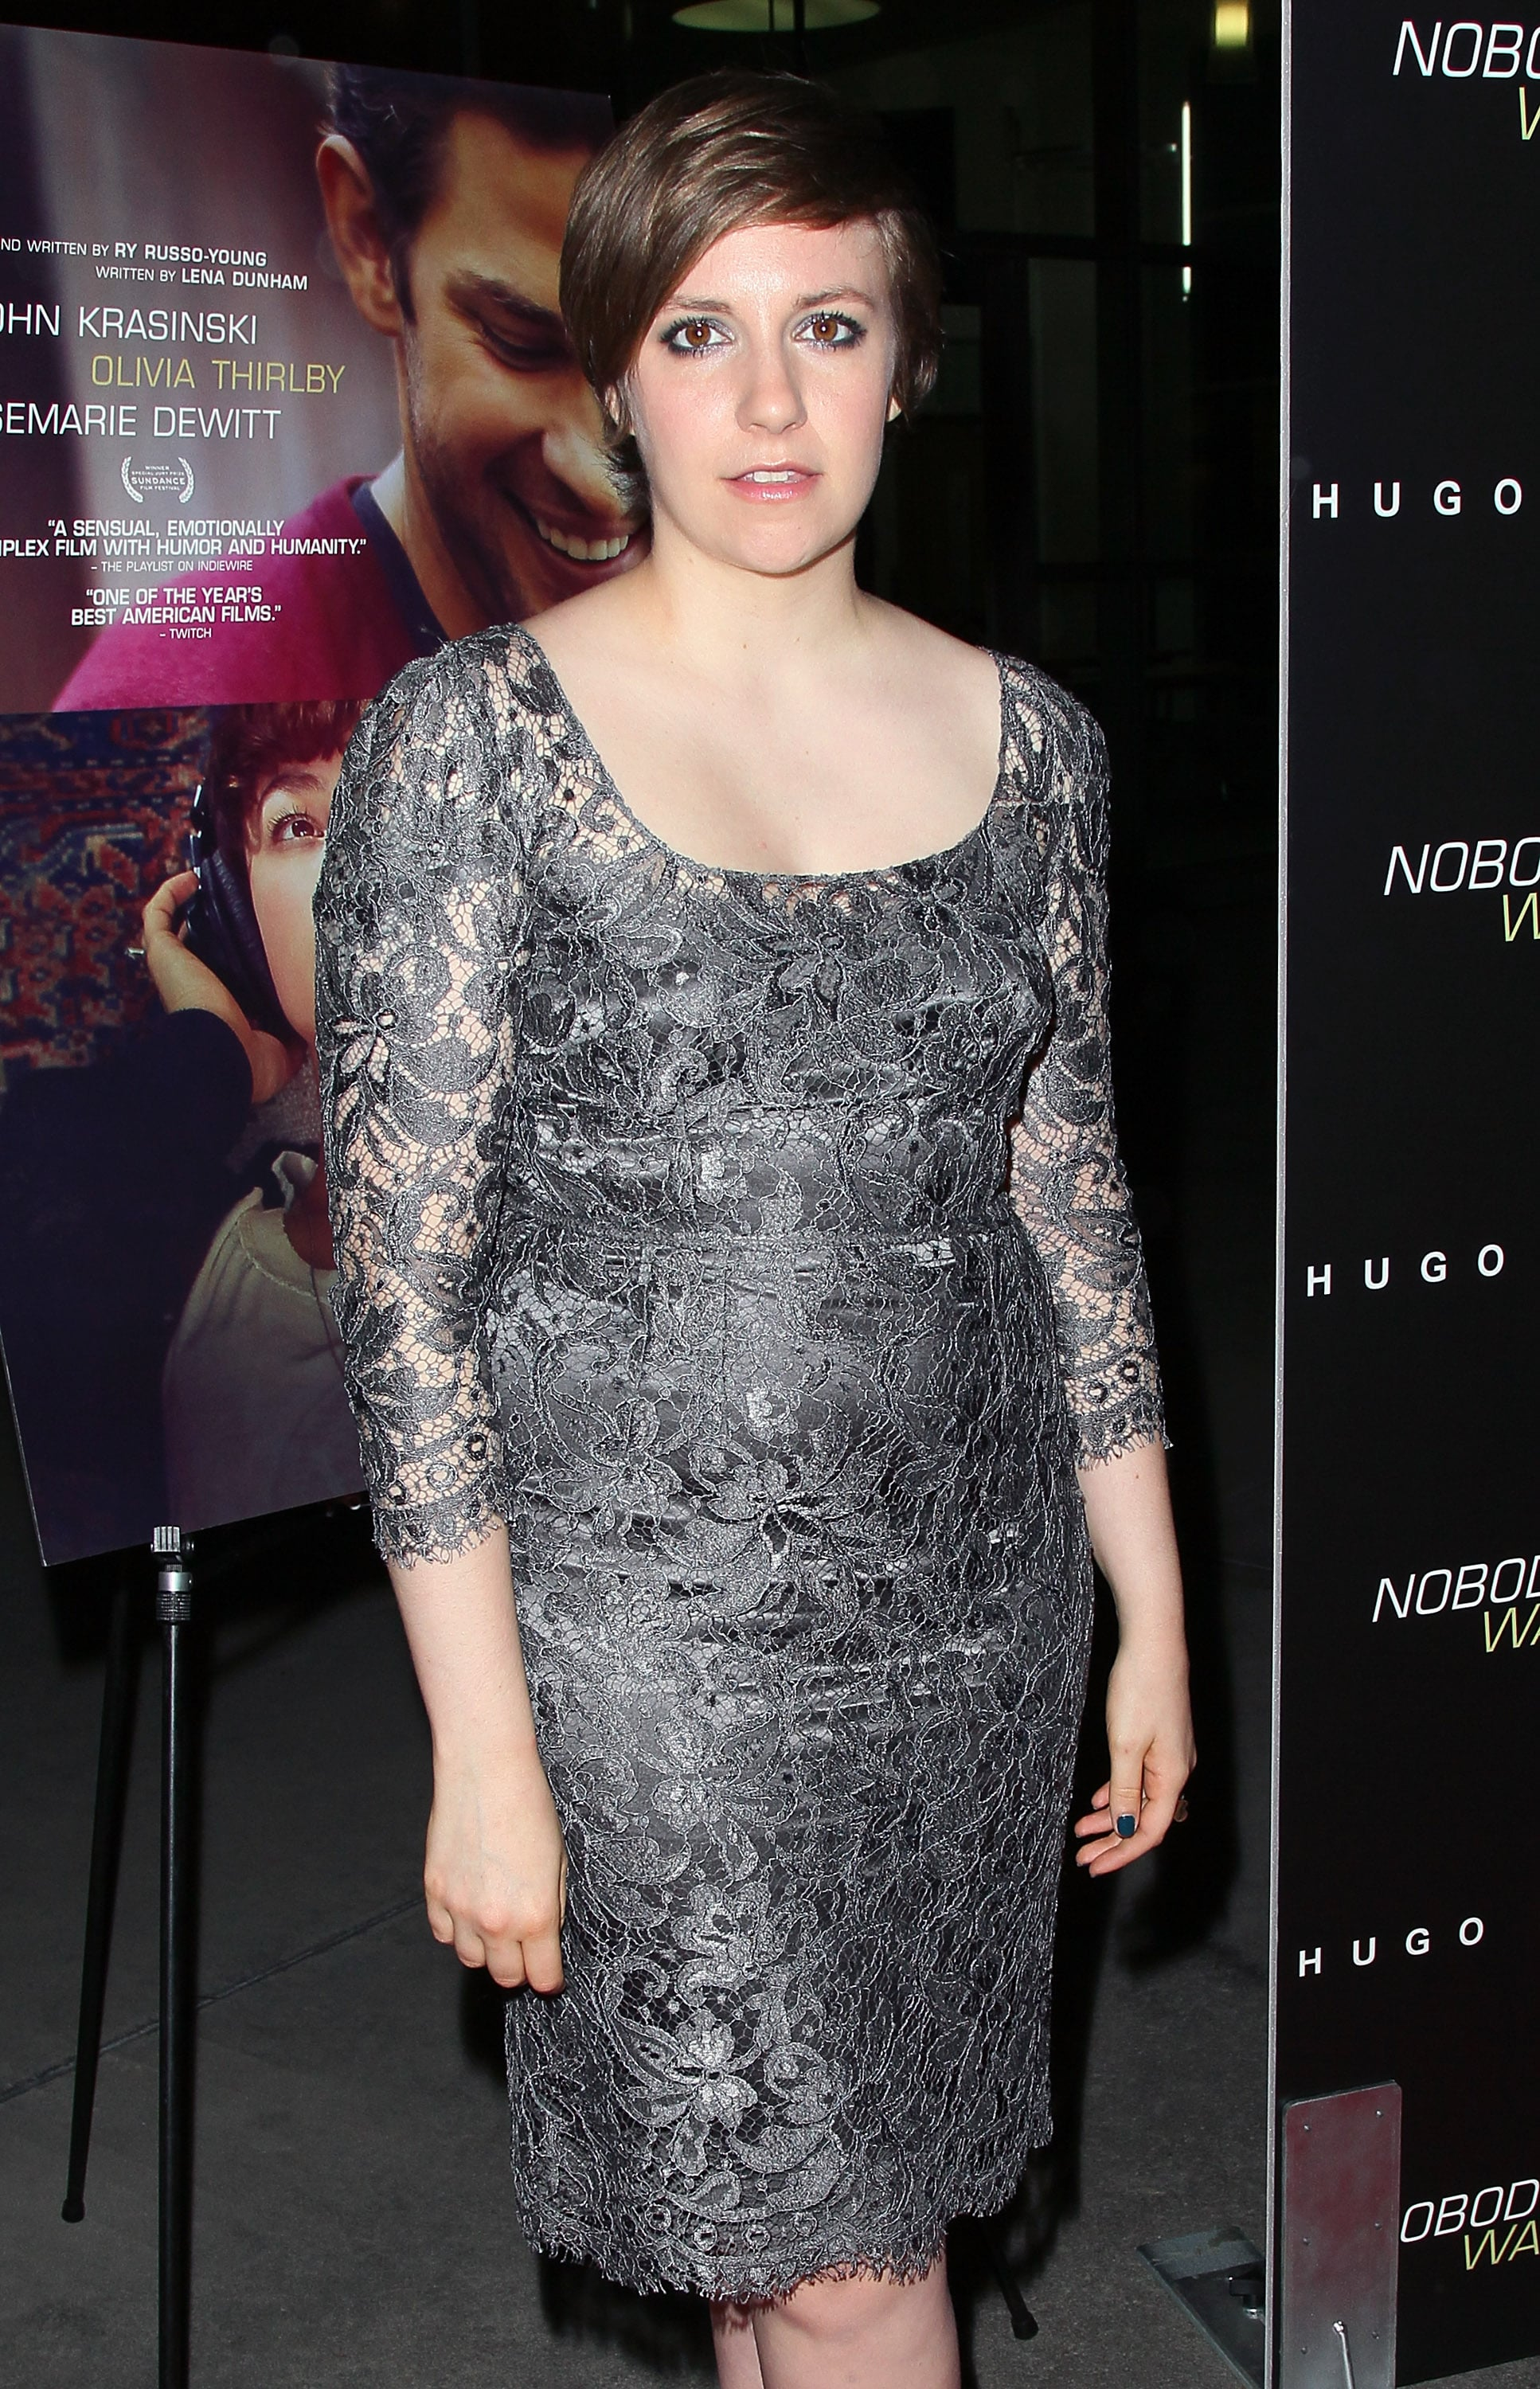 Lena Dunham Presents a New Project to Isabel, Nicky, and Pregnant Malin